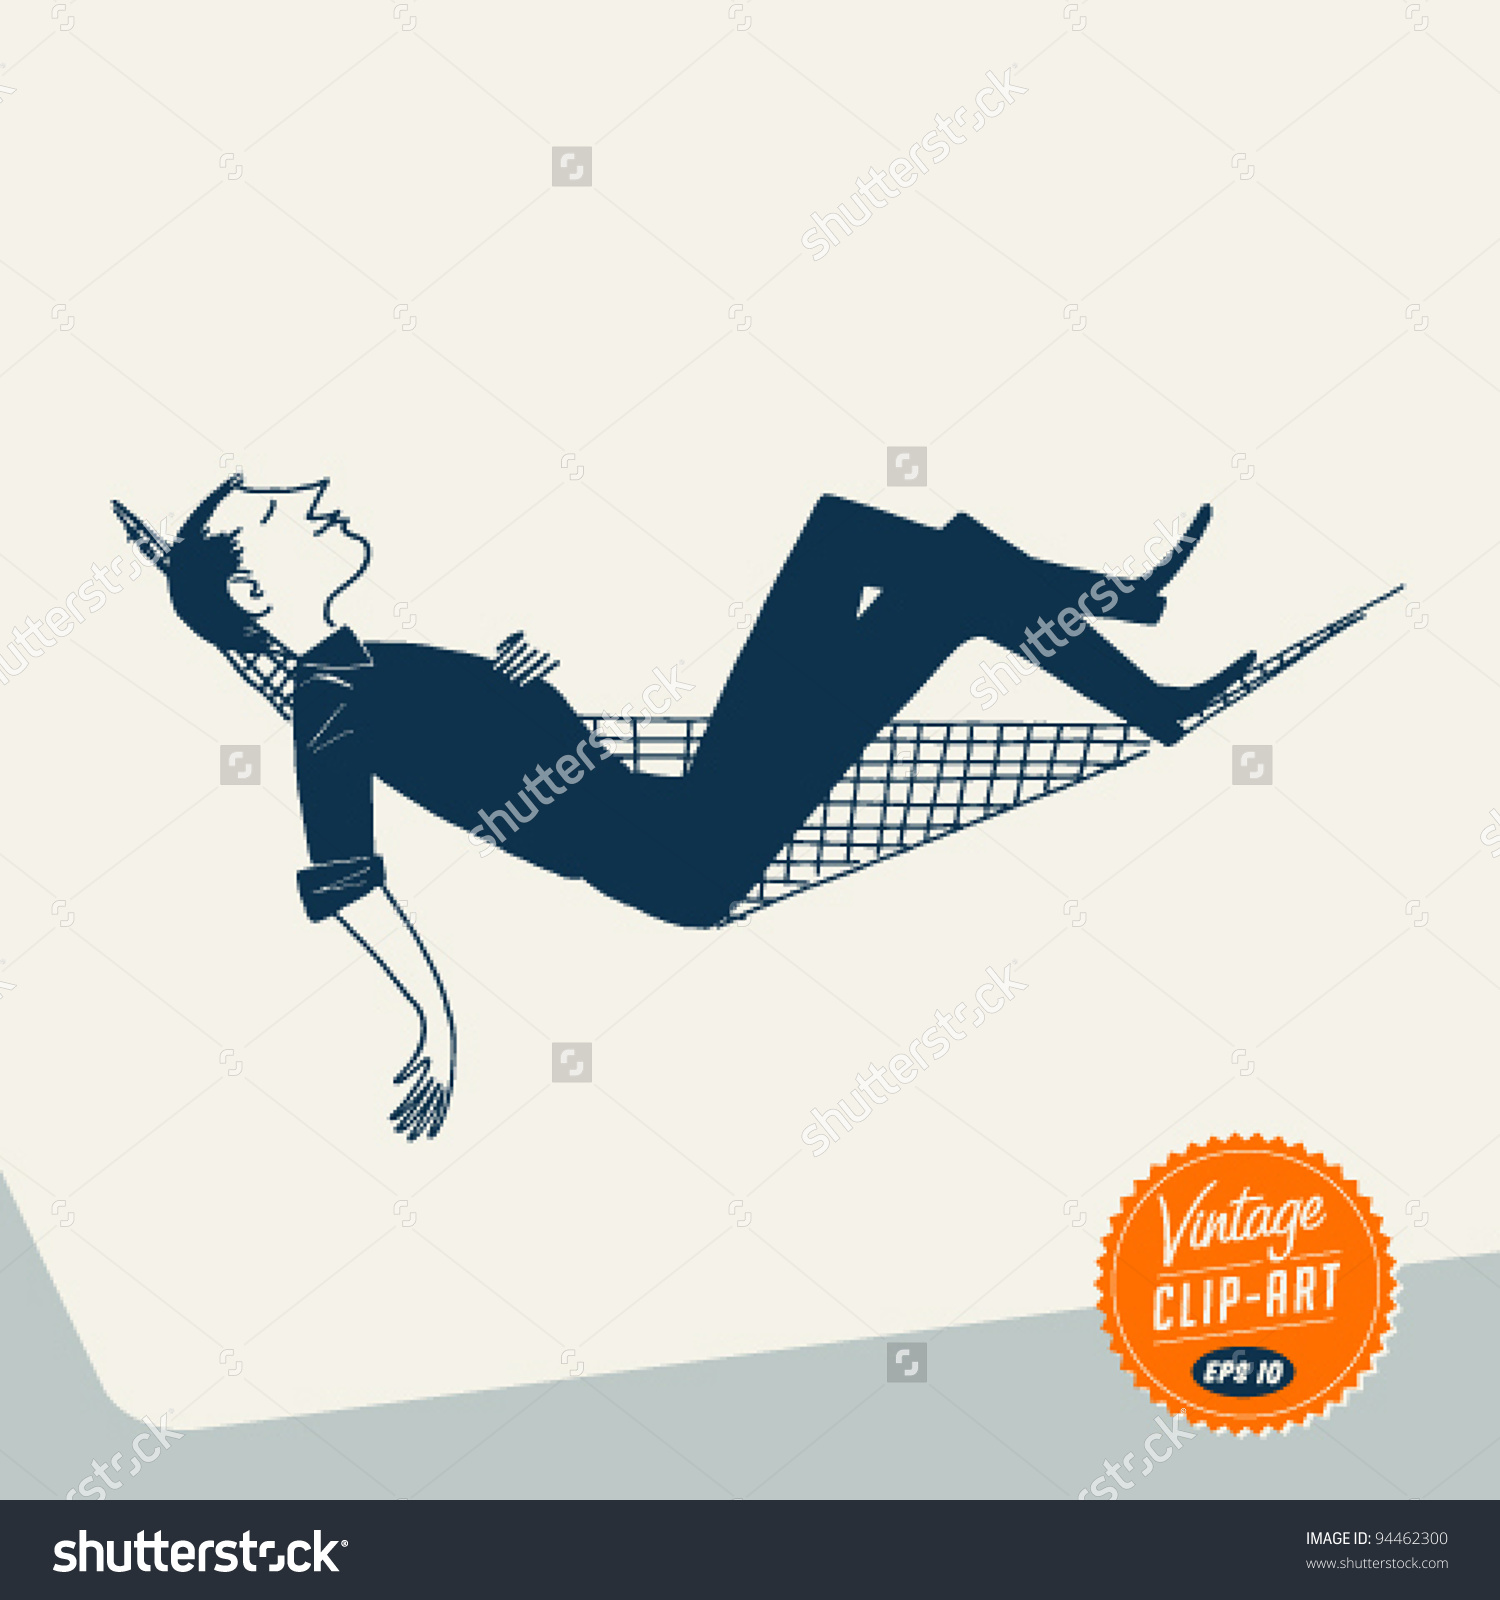 Vintage Clip Art Man Relaxing Hammock Stock Vector 94462300.